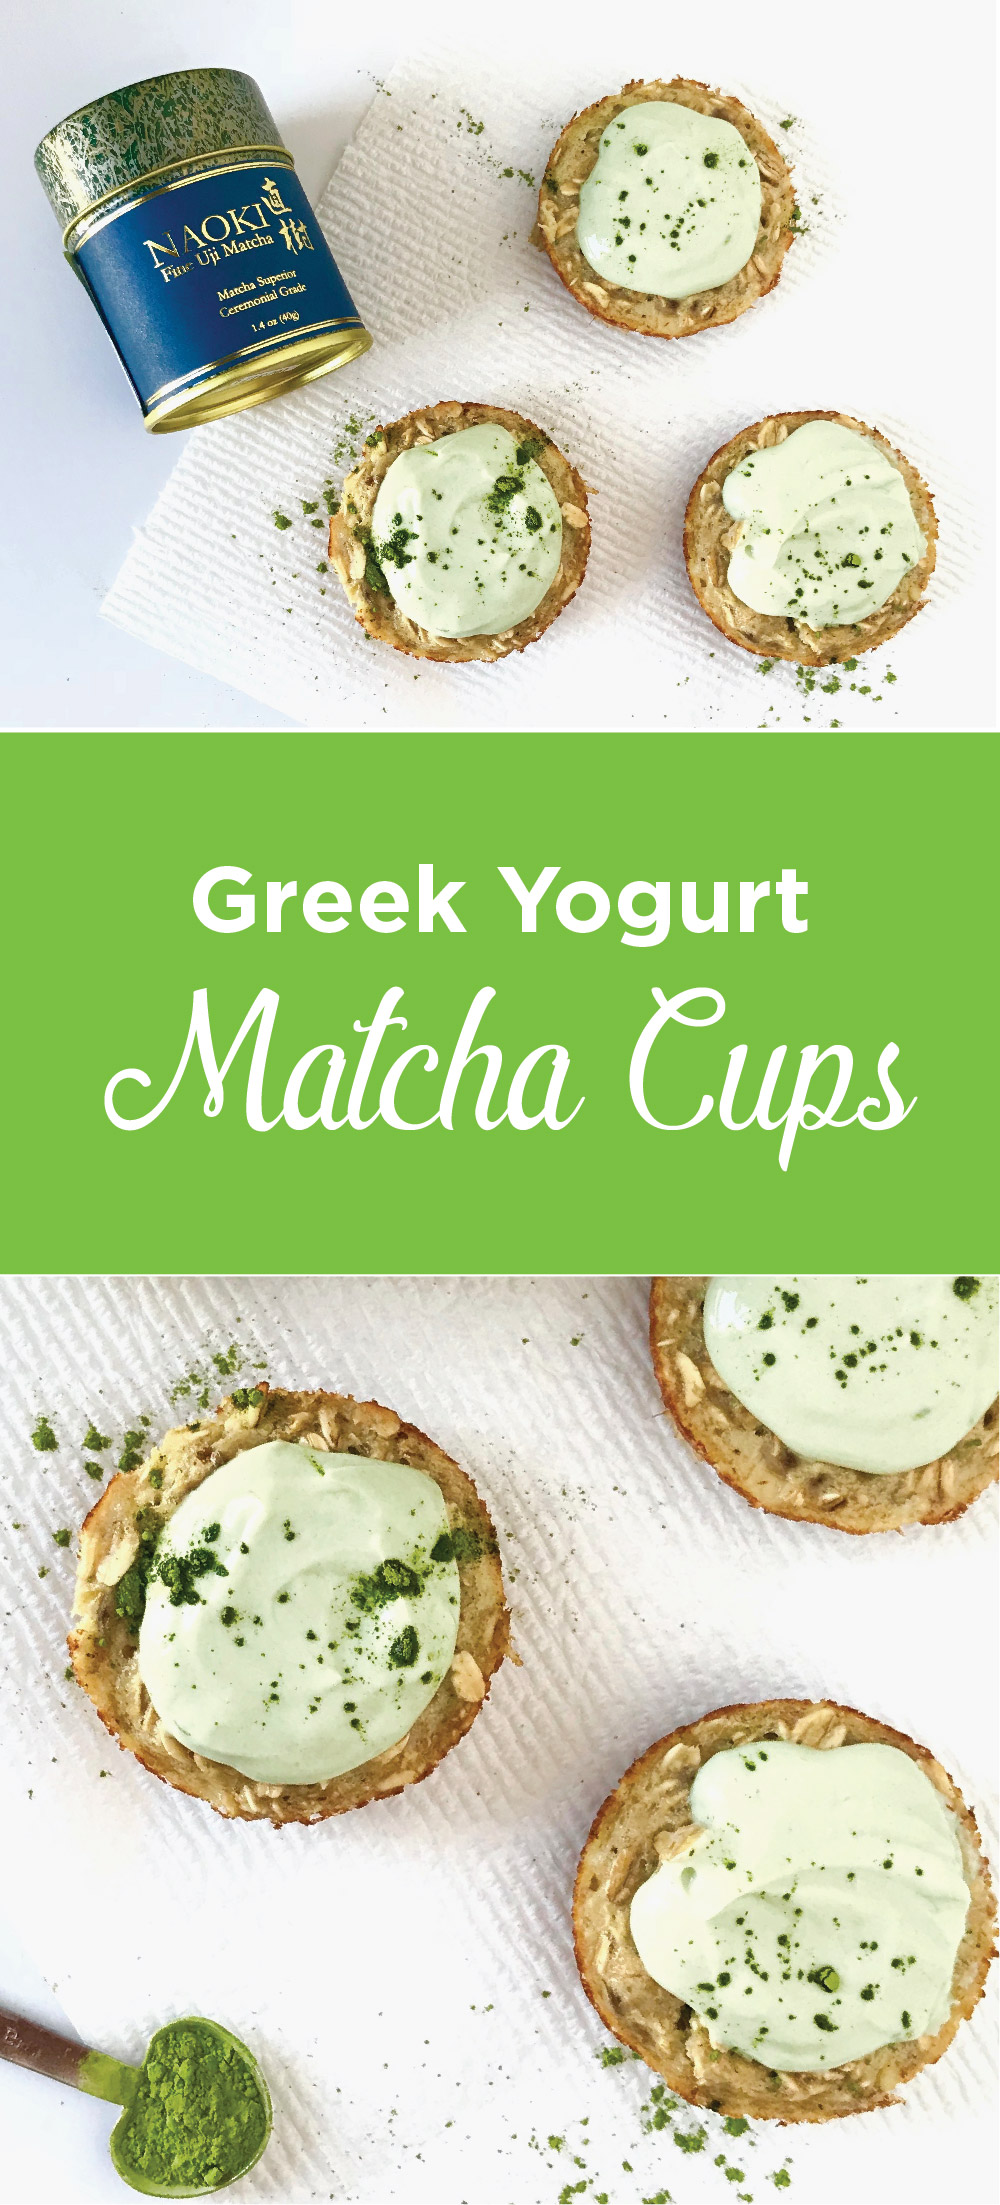 Greek Yogurt Matcha Cups to start your day right. These give you energy and fuel your mind and body. Visit www.FitstagramMichelle.com for the full recipe.